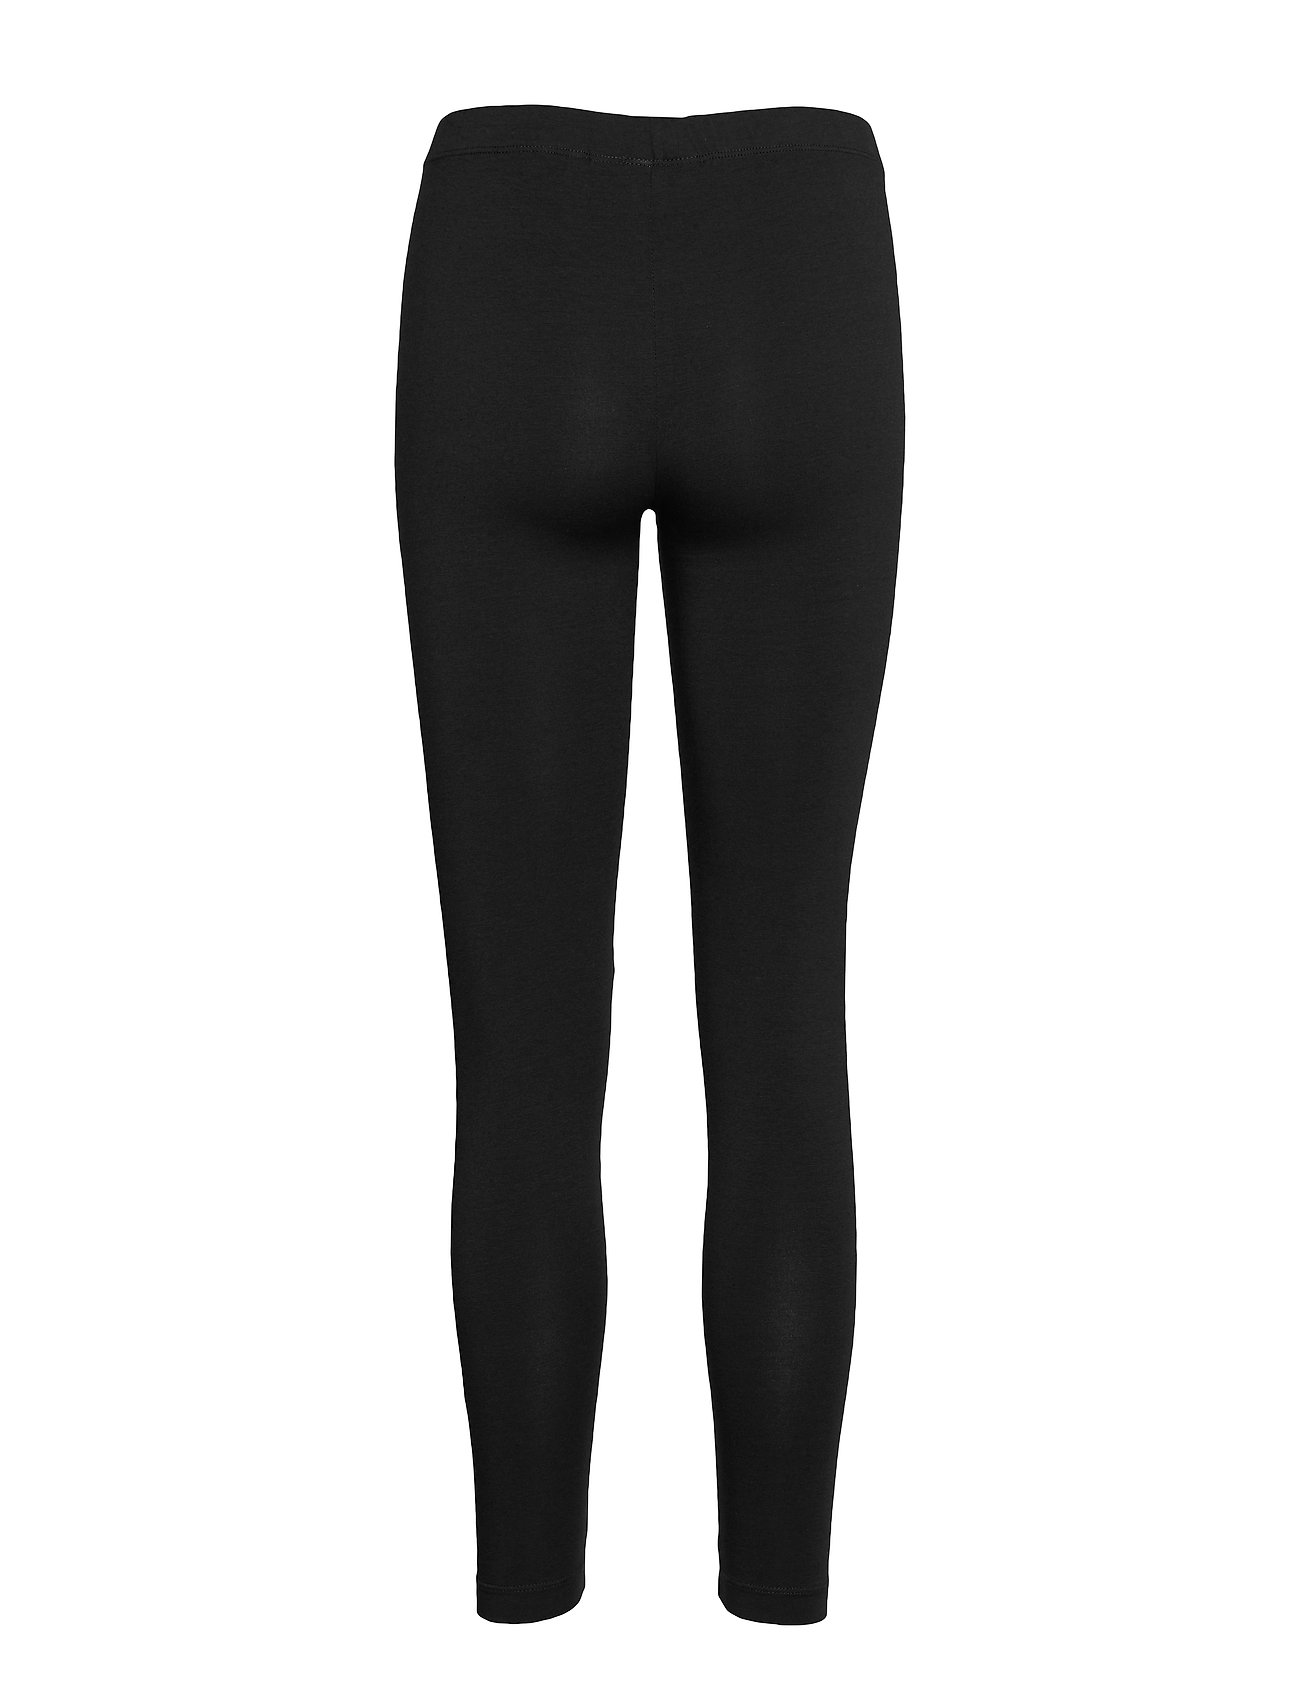 Noa Leggings - & Tights